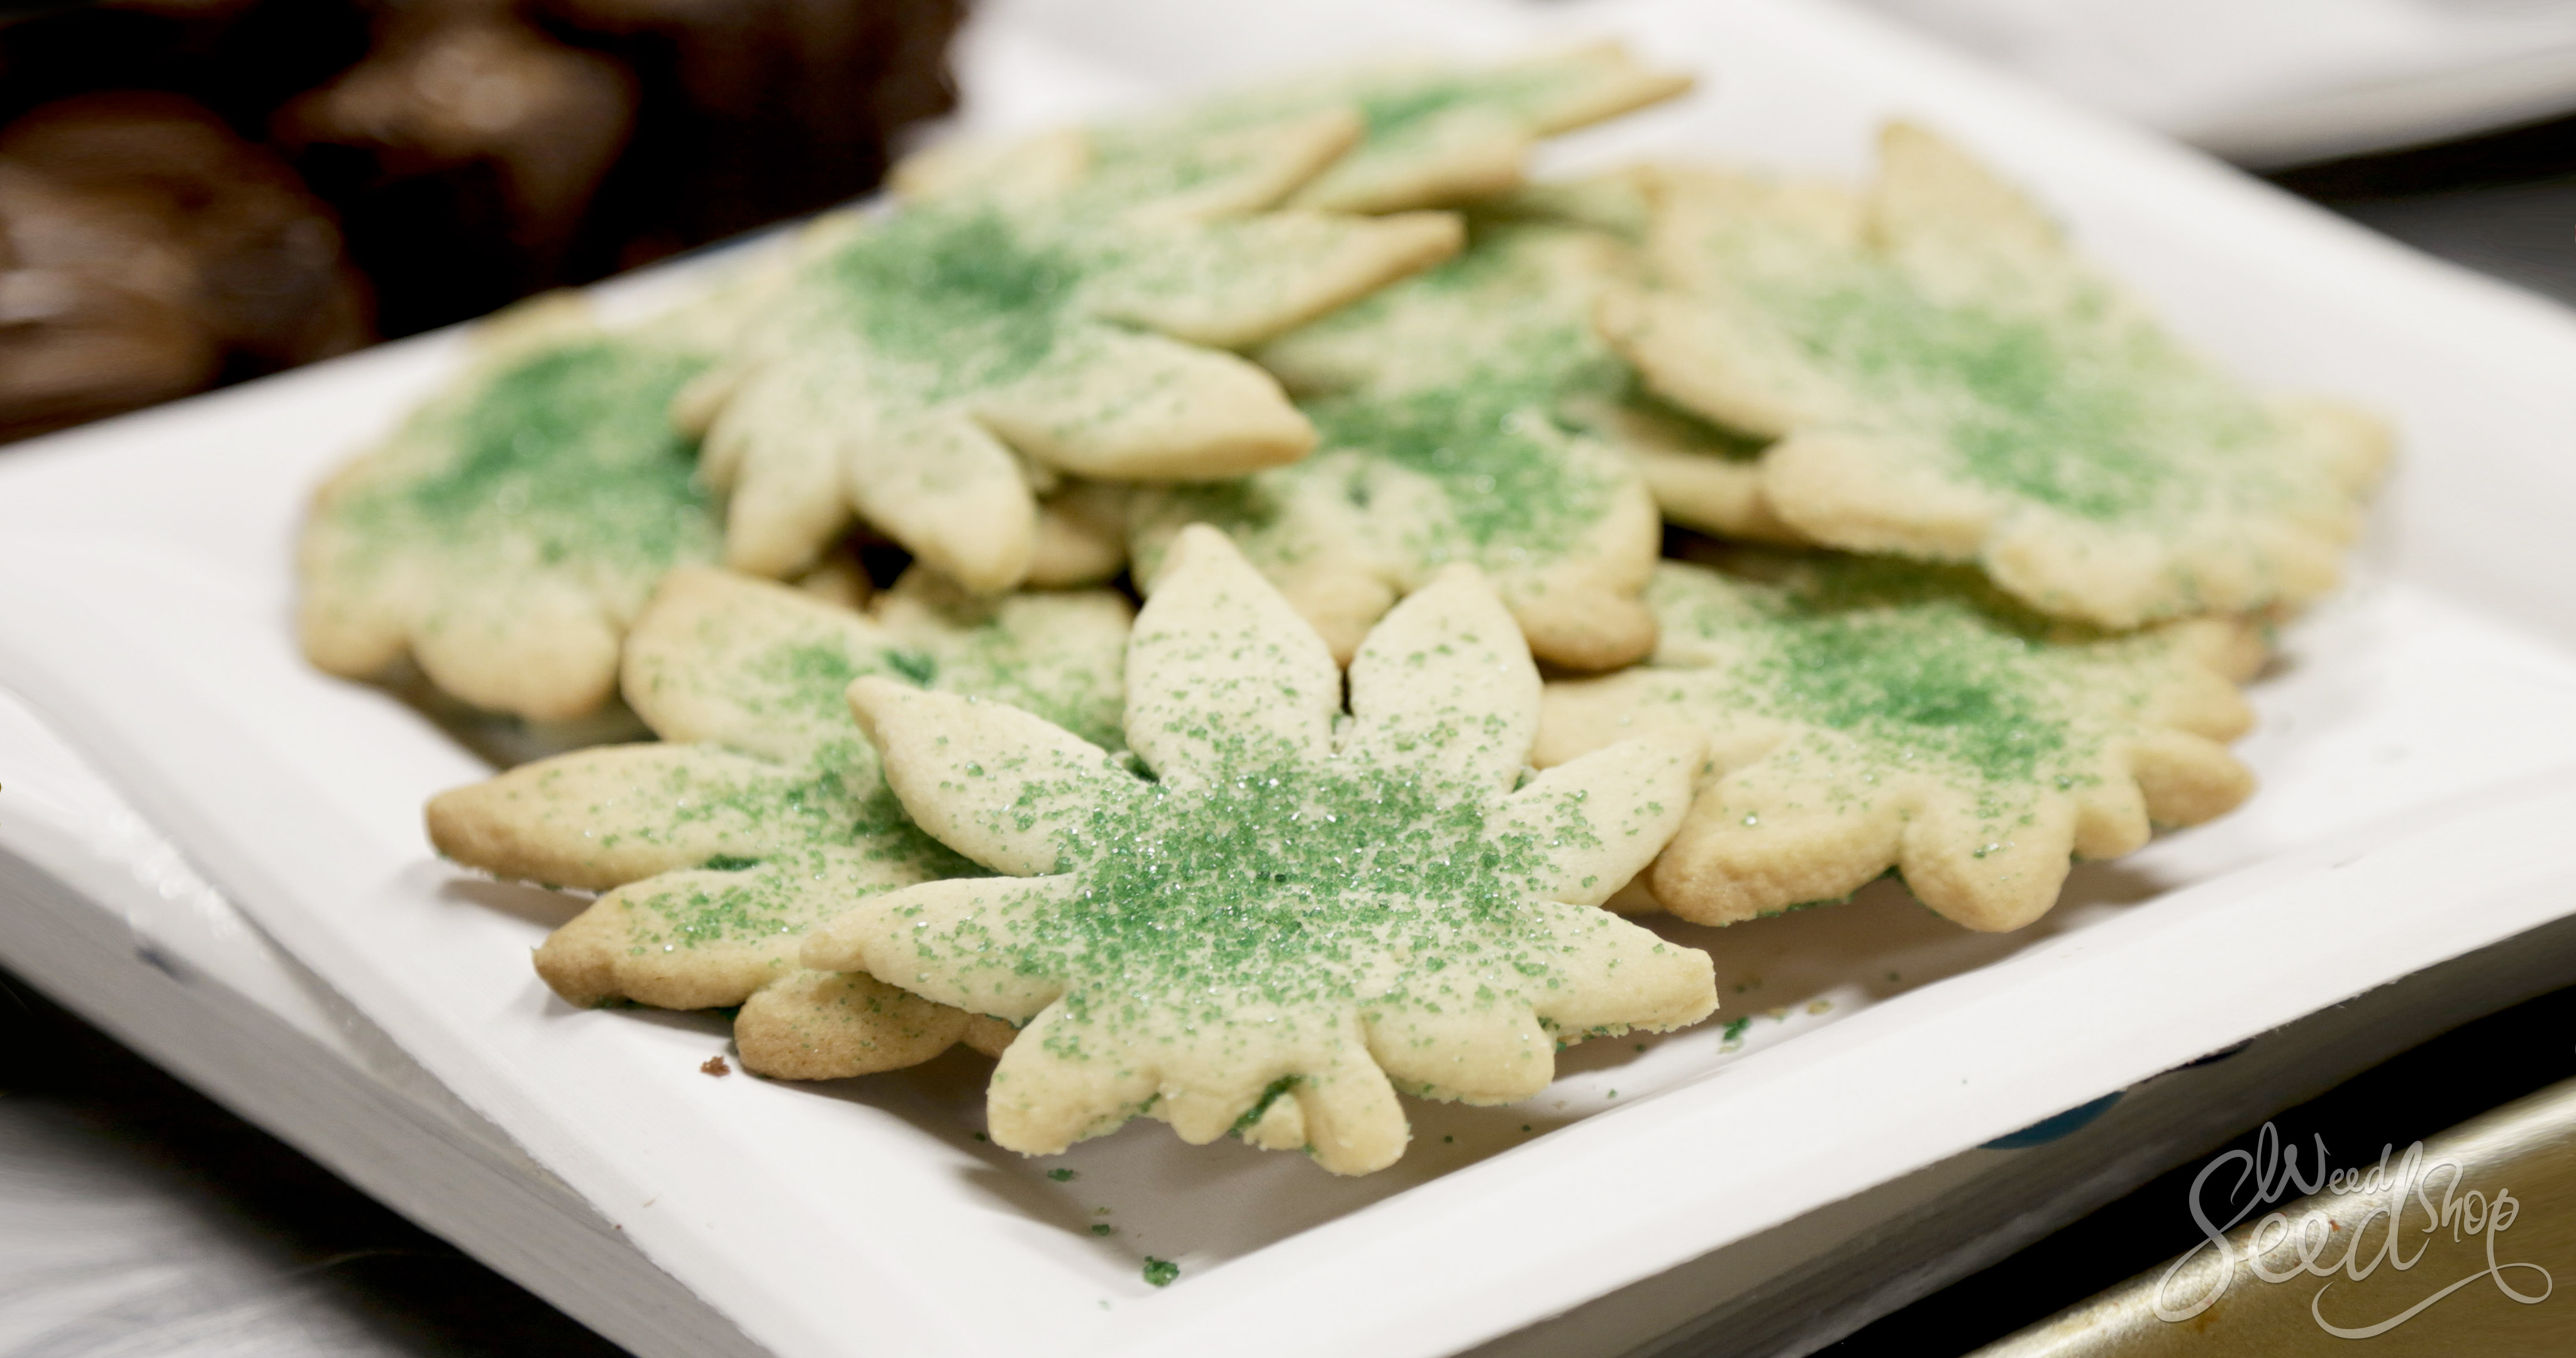 A Herbal Christmas With 5 Cannabis Edible Recipes - WeedSeedShop